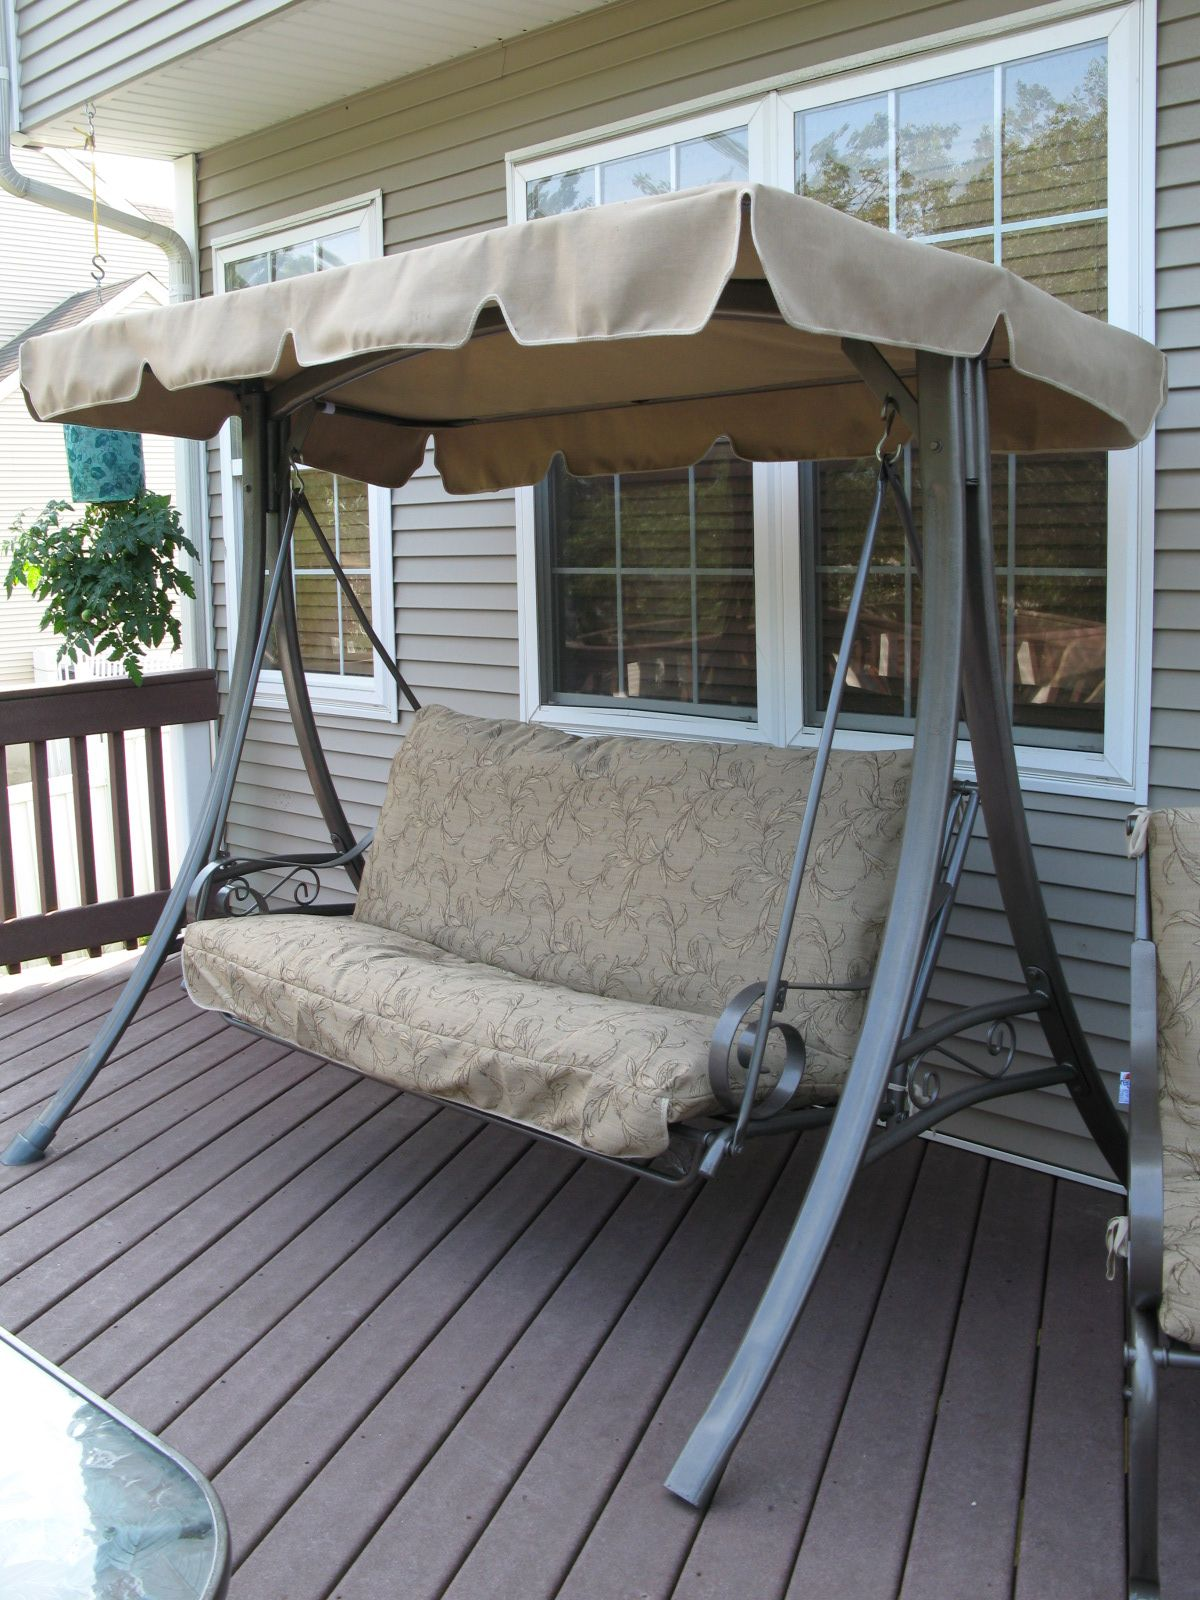 Pin By Swing Cushion Covers And More On Refurbish Your Patio Swings |  Pinterest | Patio, Cushions And Cushion Covers